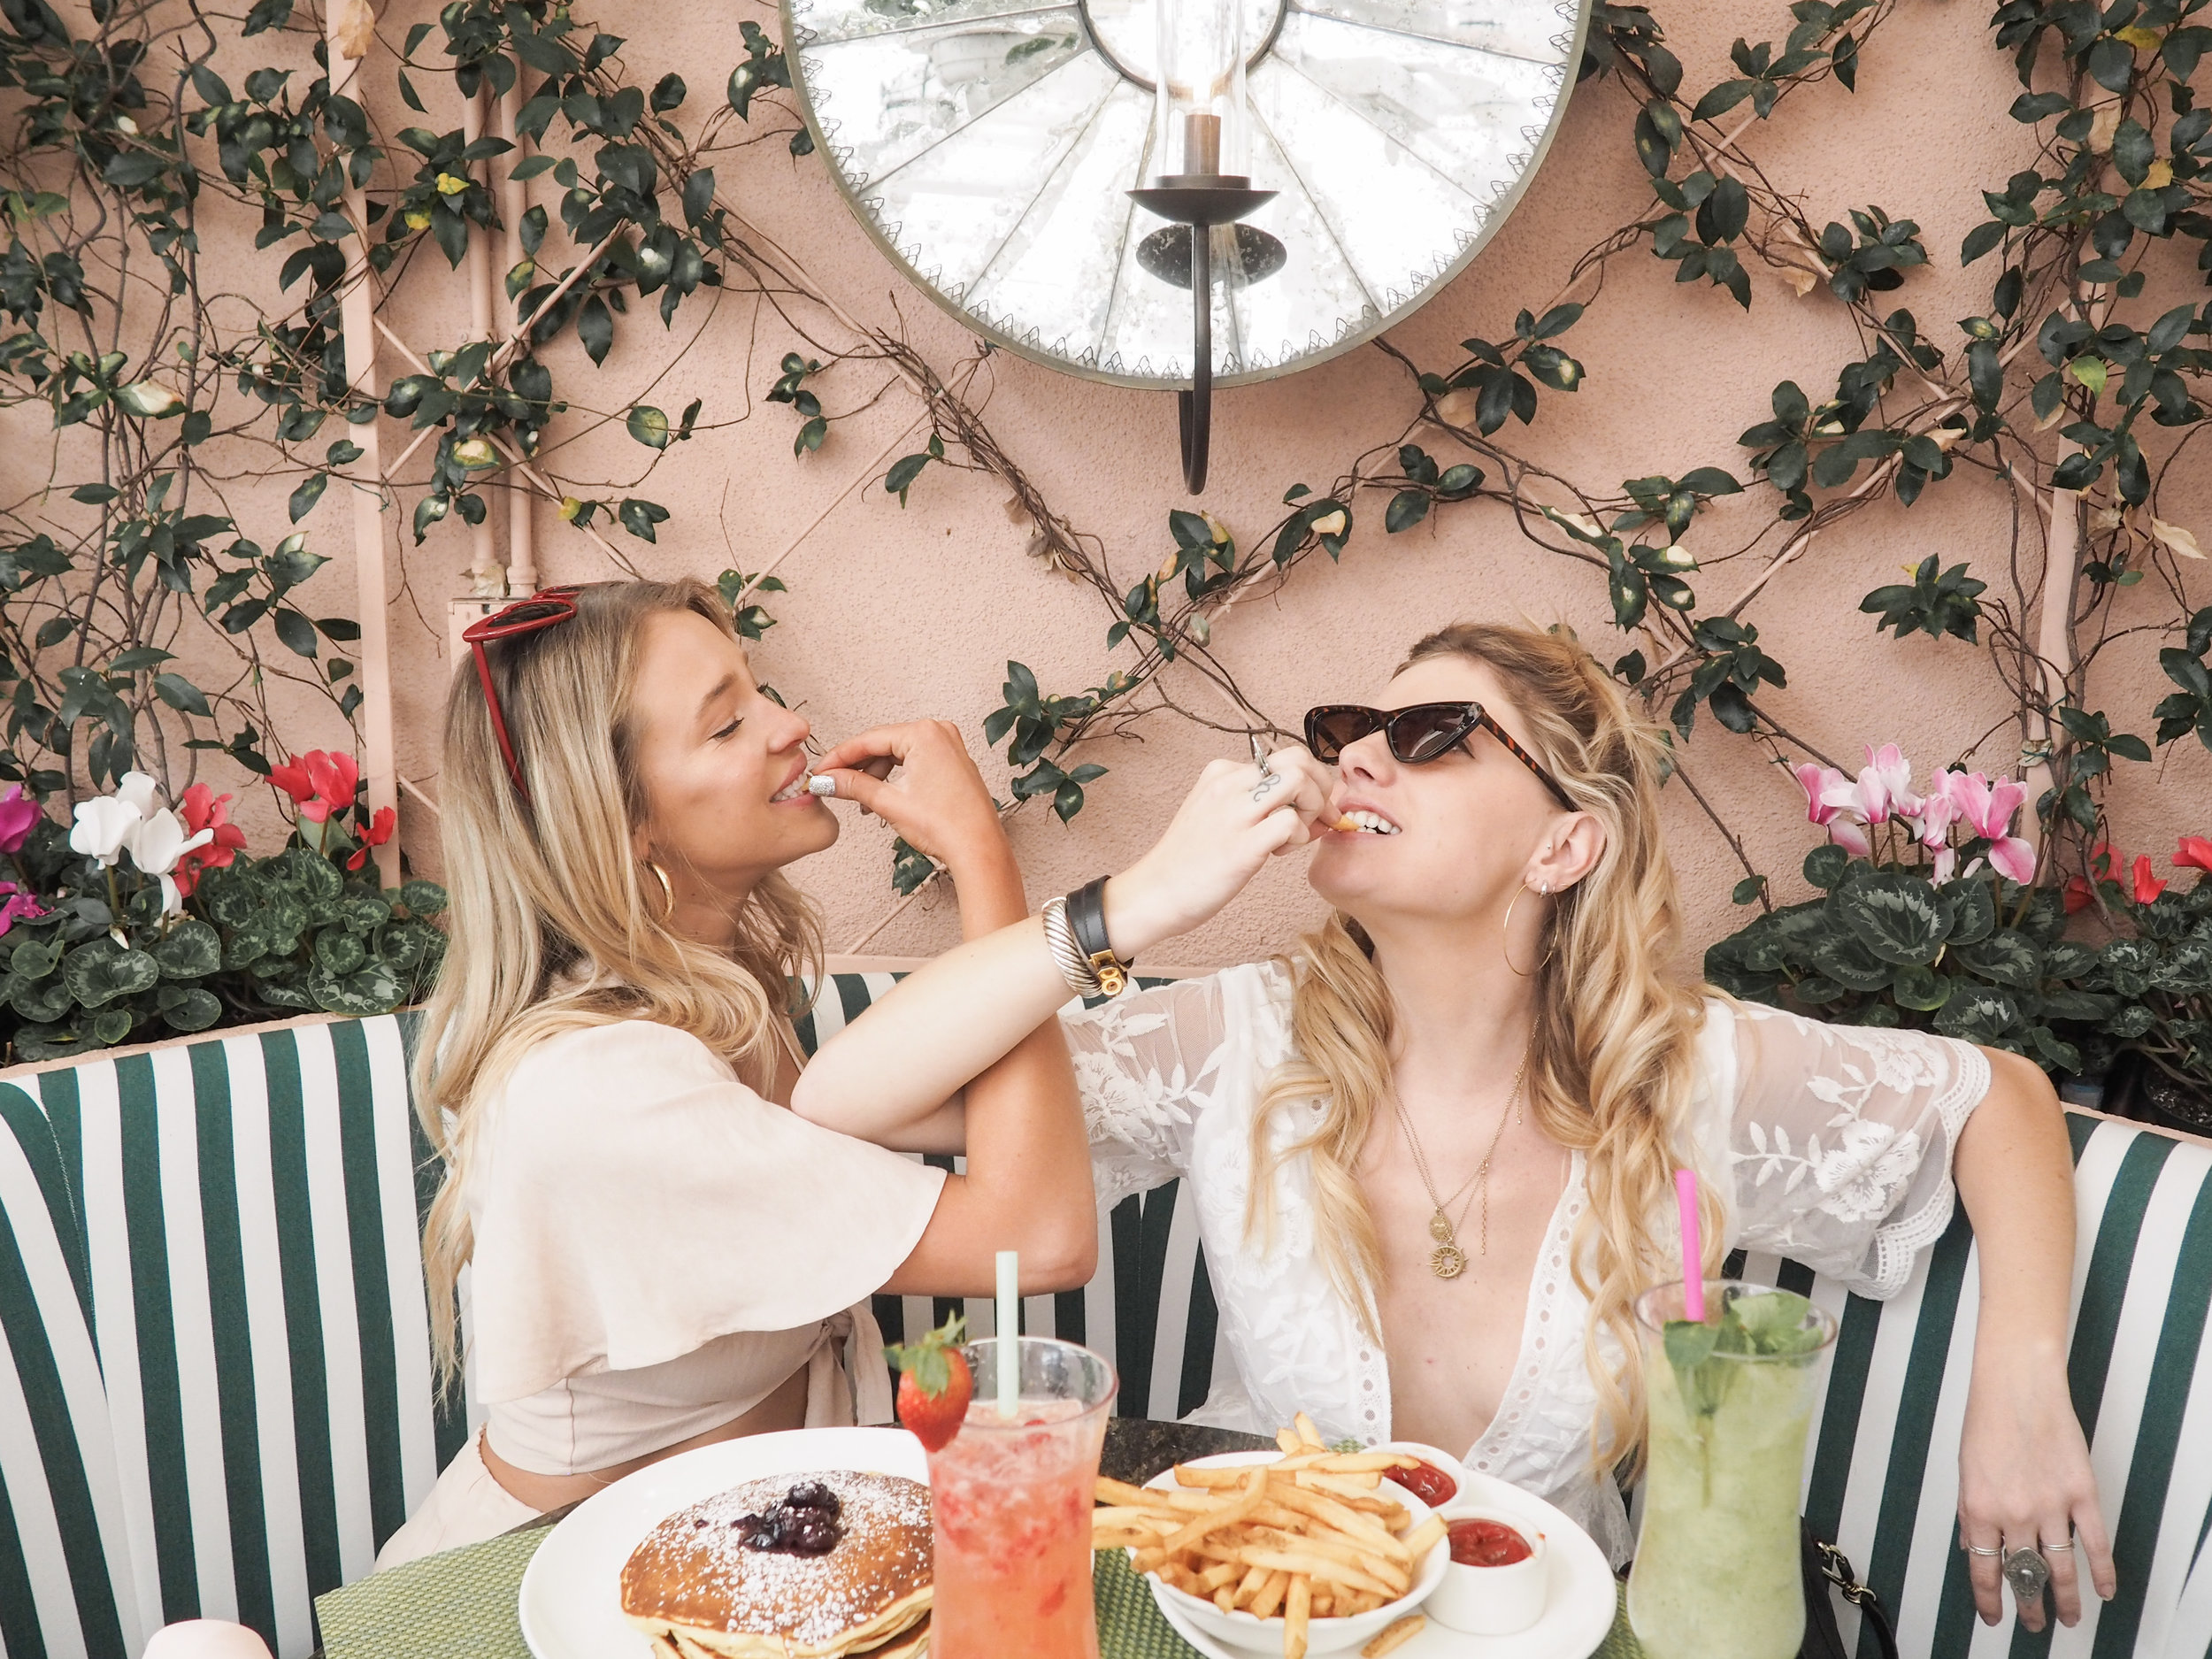 Finally, treat yourself to a nice meal. Take yourself to a restaurant you've always wanted someone else to take you to, order the pancakes WITH a side of fries, drink Mimosas with the gals and go around telling each other all of your favorite things about each other.